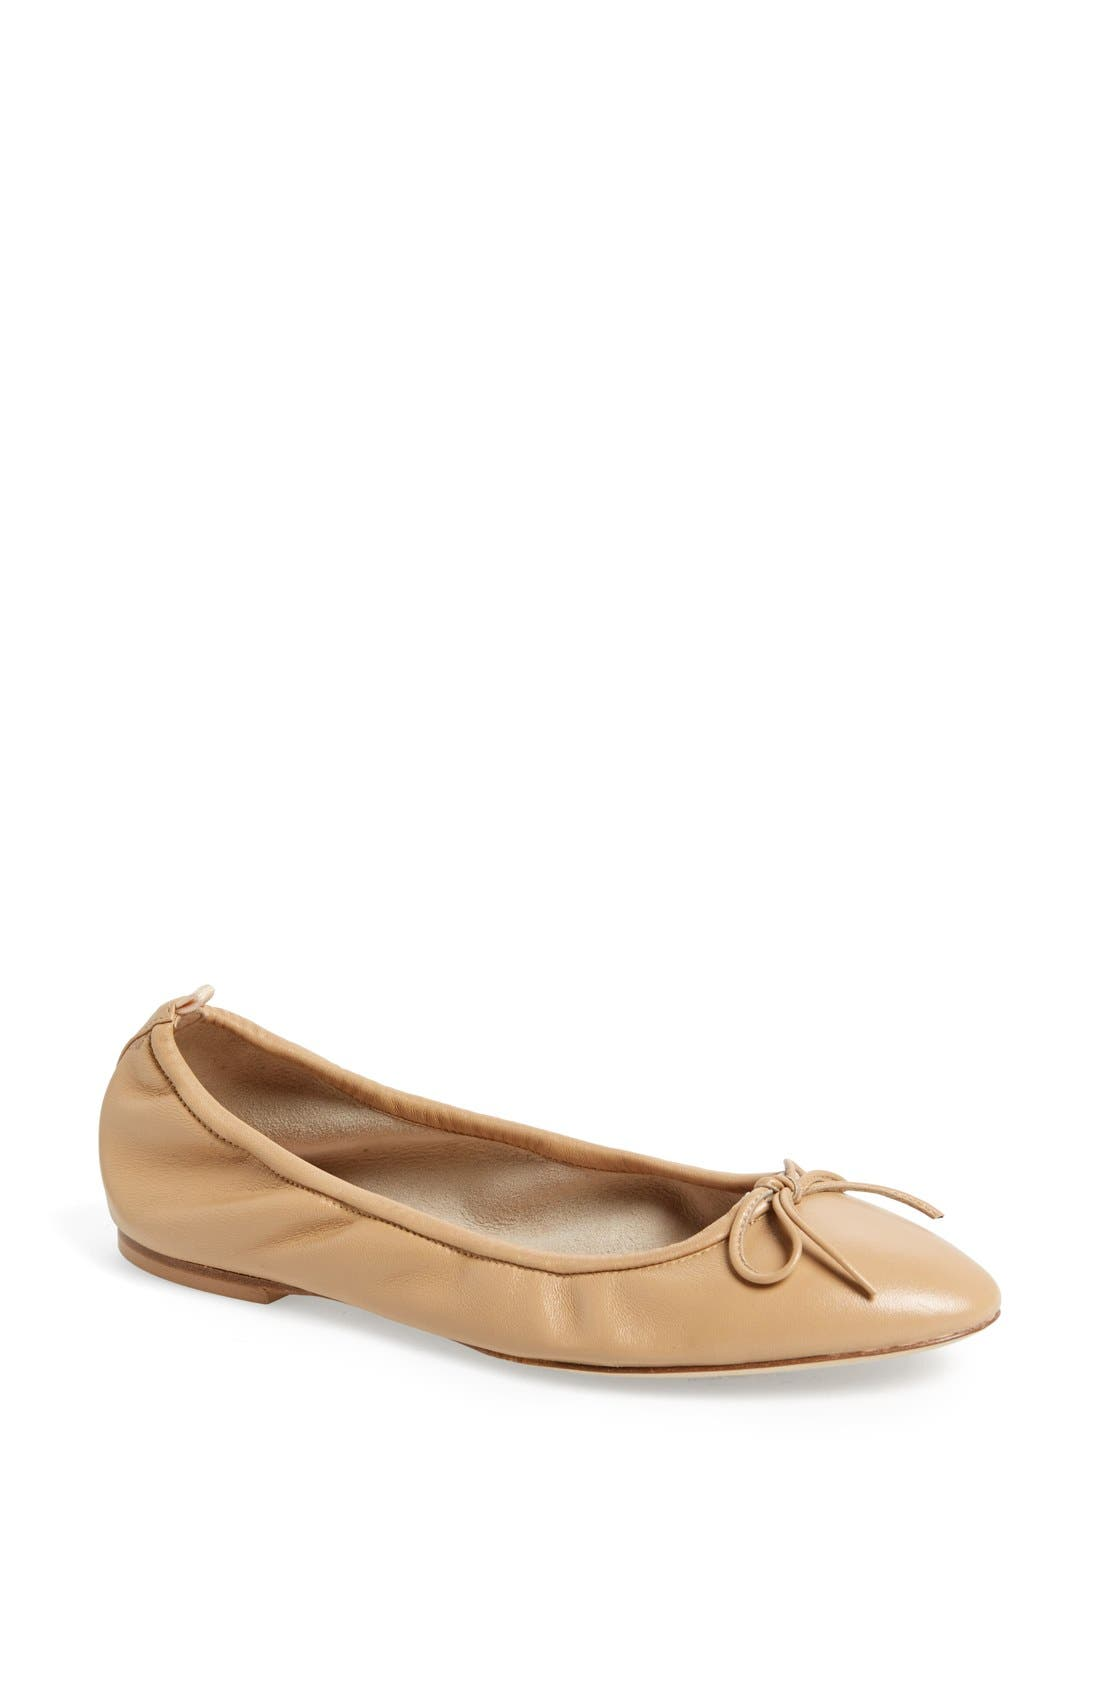 Alternate Image 1 Selected - SJP by Sarah Jessica Parker by Sarah Jessica Parker 'Gelsey' Nappa Leather Skimmer Flat